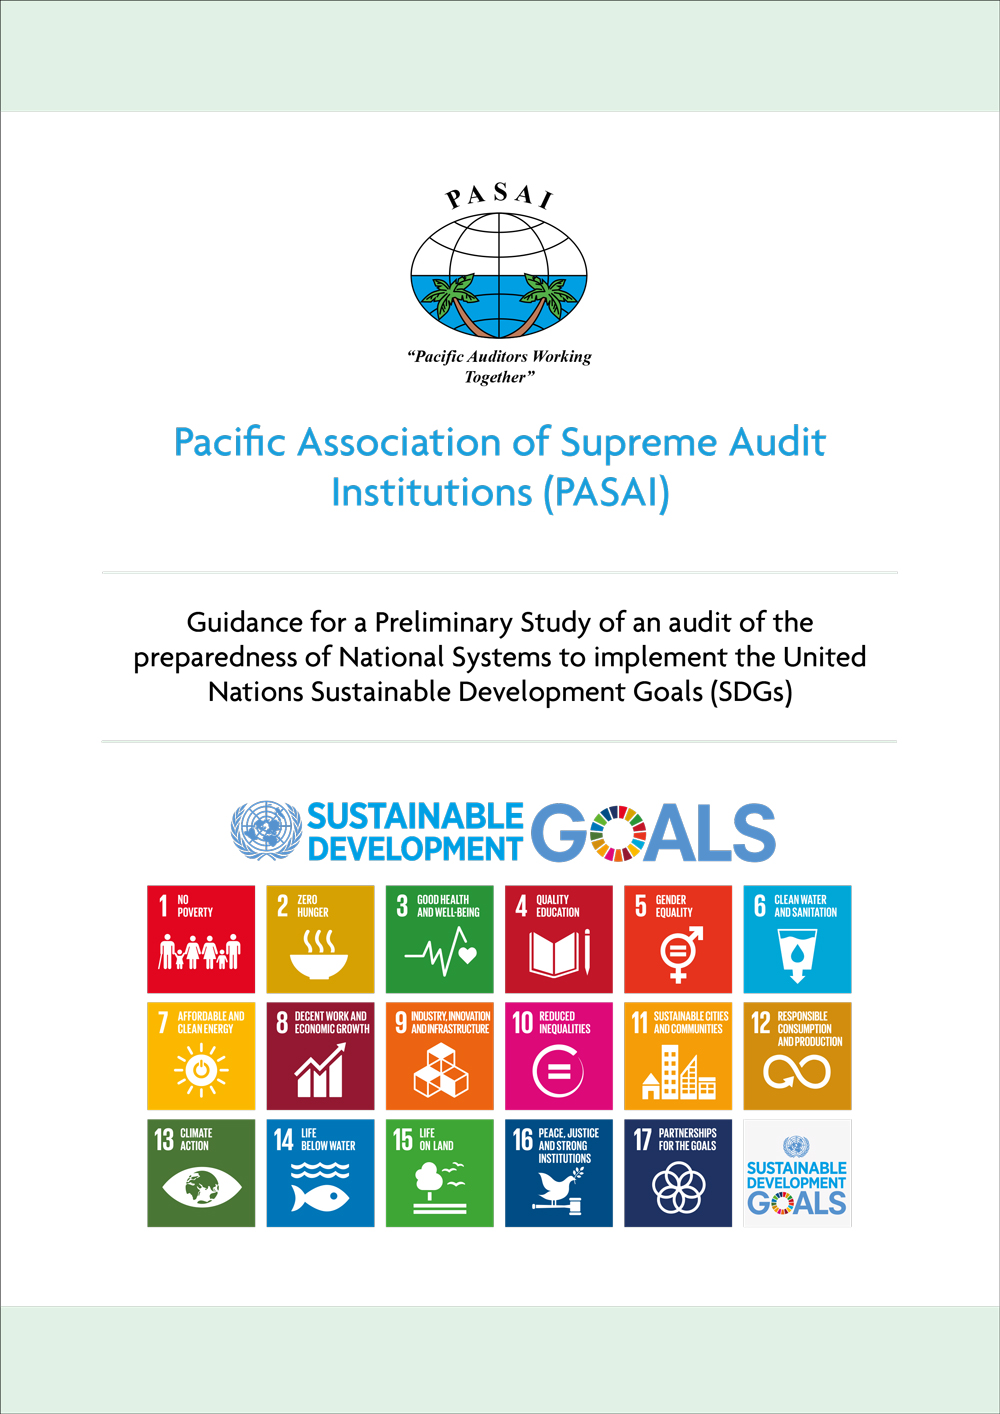 Guidance for a Preliminary Study of an audit of the preparedness of National Systems to implement the United Nations Sustainable Development Goals (SDGs)